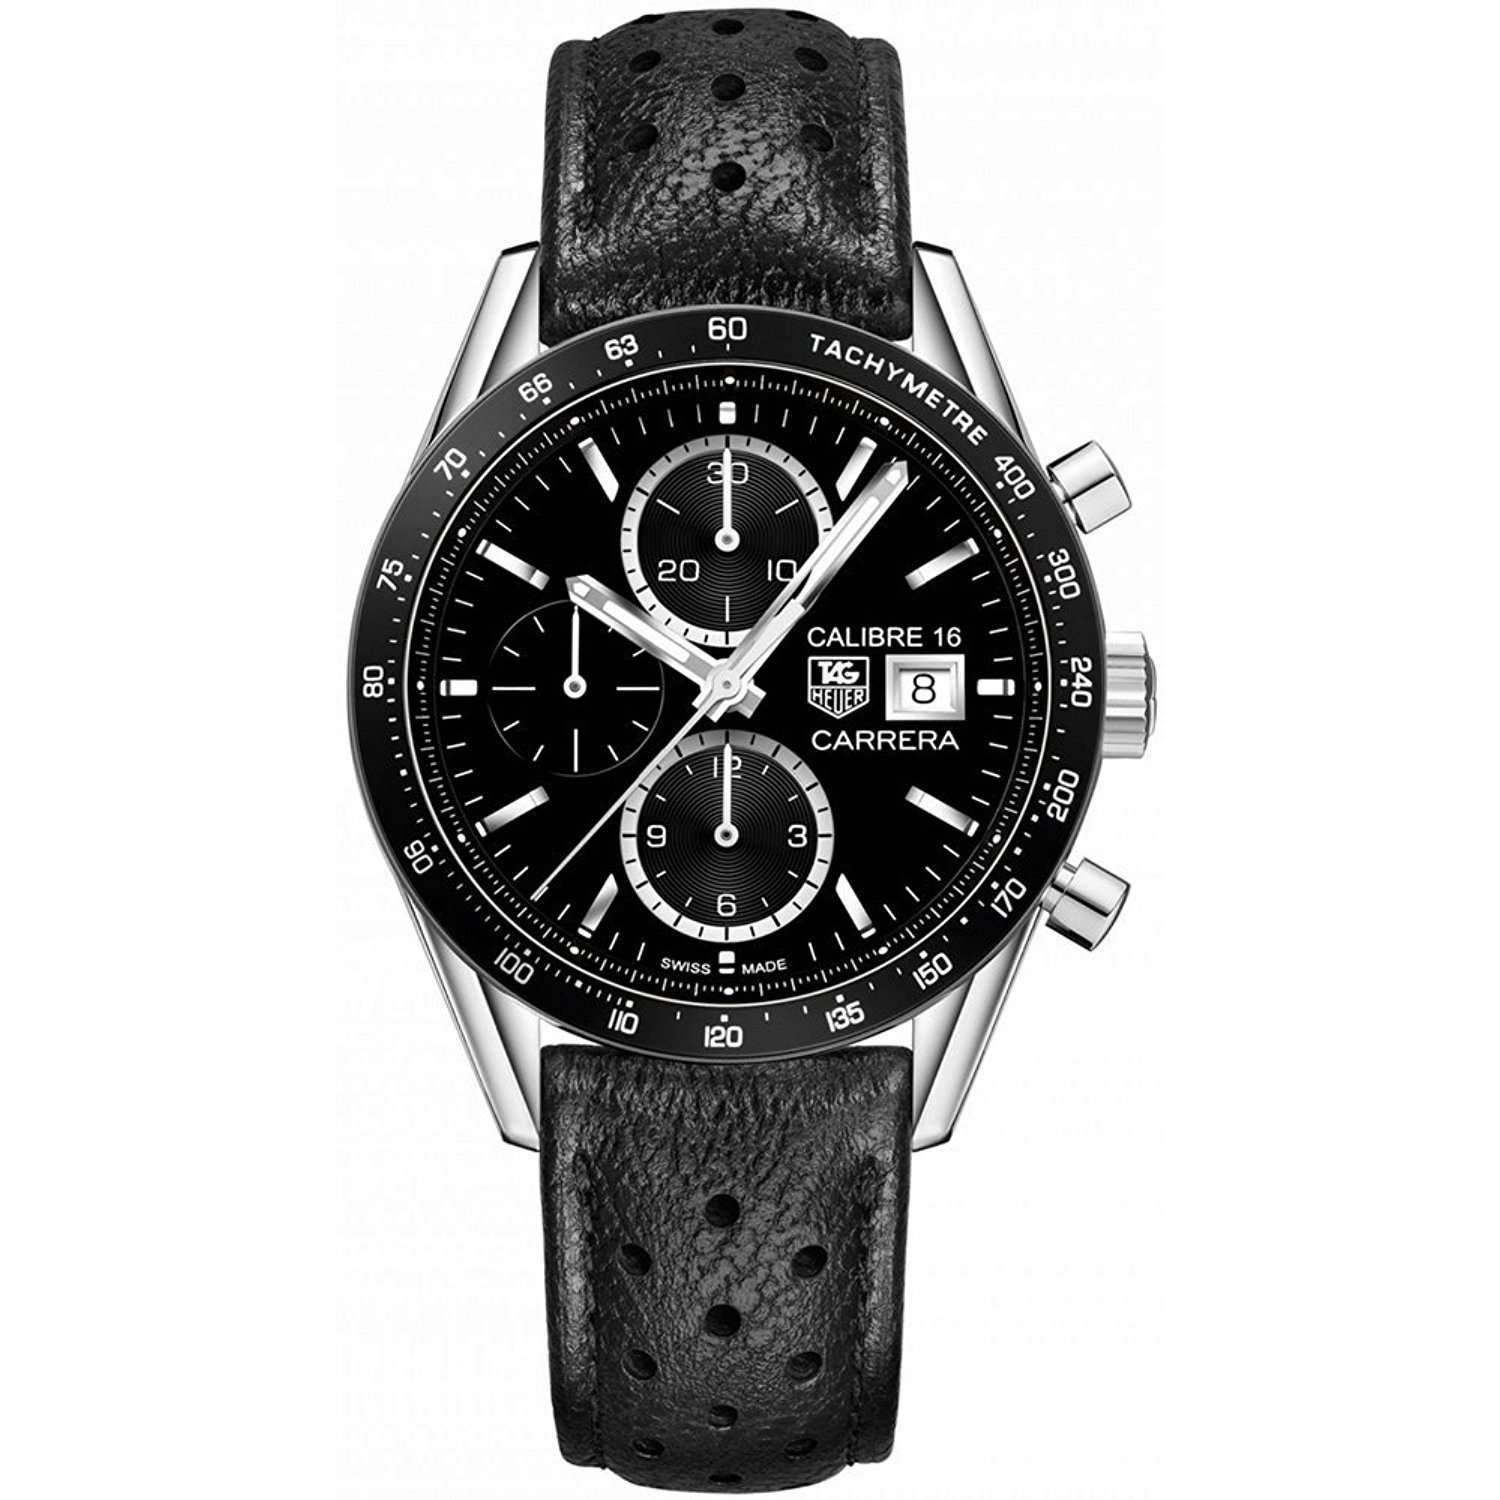 s watches model automatic zm carrera watch men tag heuer chronograph